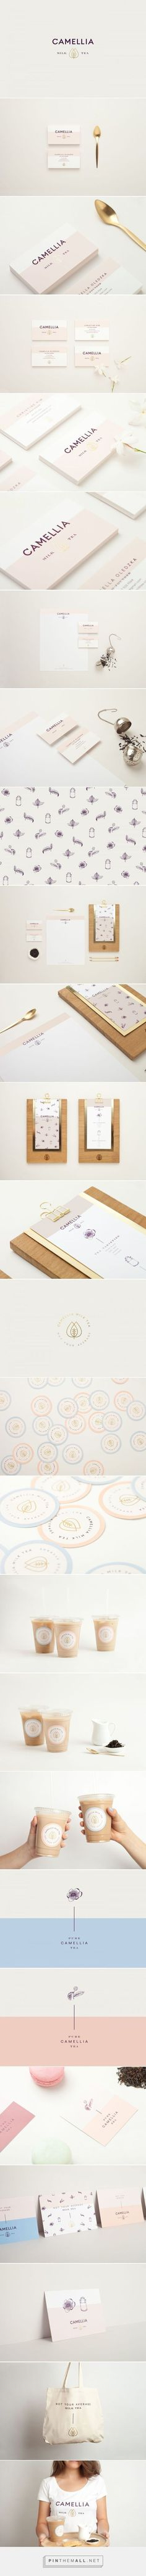 Camellia Milk Tea on Behance / Branding / Brand Design / Ideas / Inspiration / Chai / Food / Delicate / Feminine / Soothing / Pastel Palette / Modern / Minimal / Minimalist